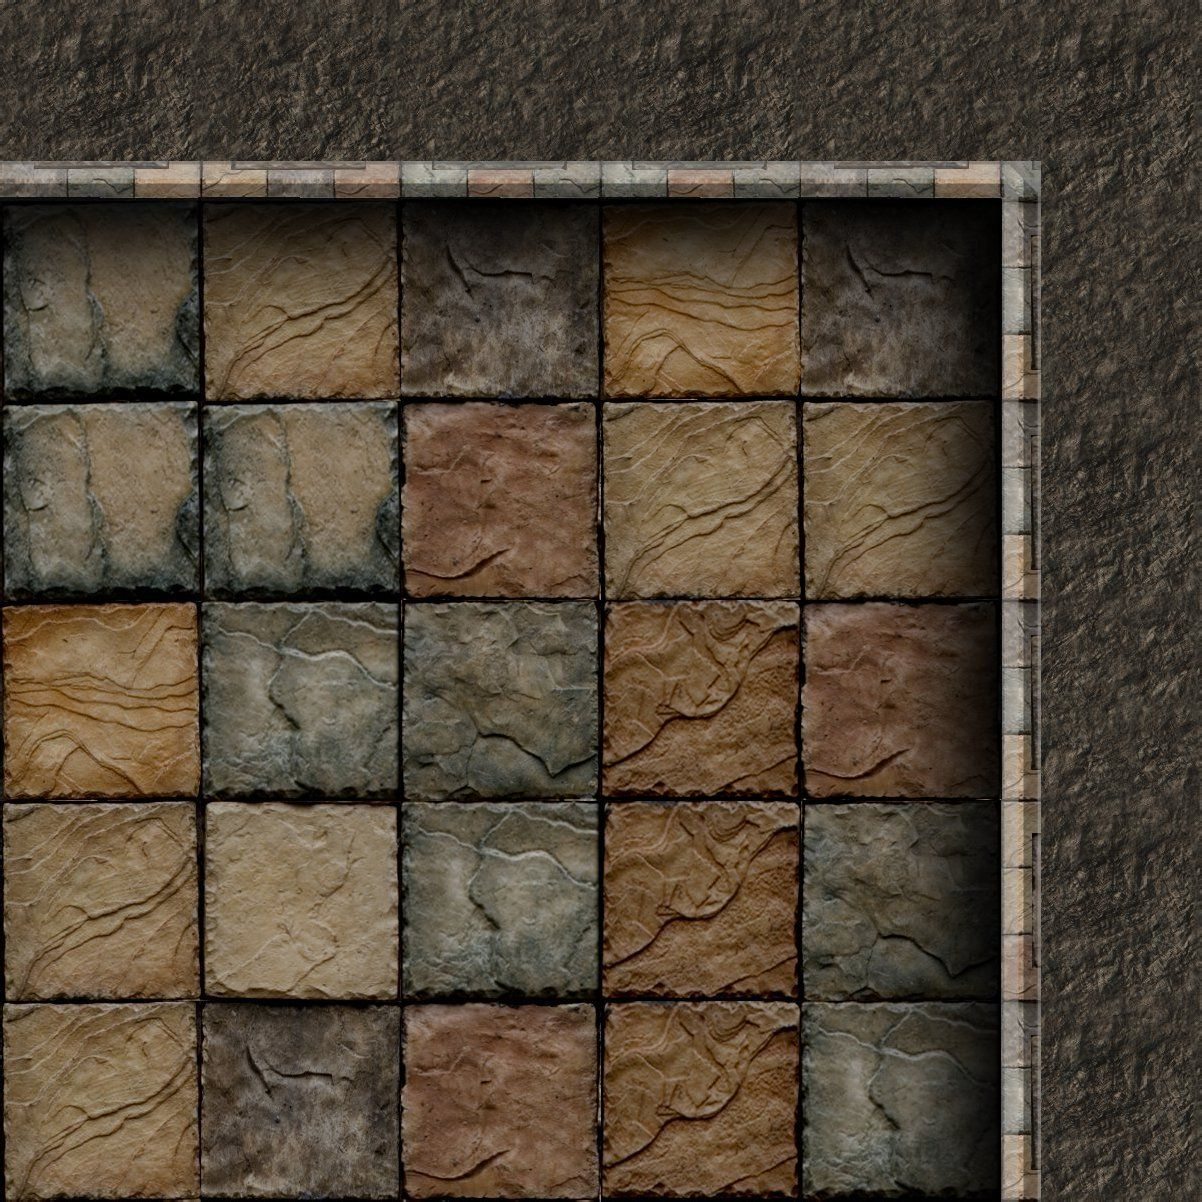 image relating to Printable Dungeon Tiles Pdf identified as 20+ Dungeon Area Tiles Pics and Strategies upon Weric